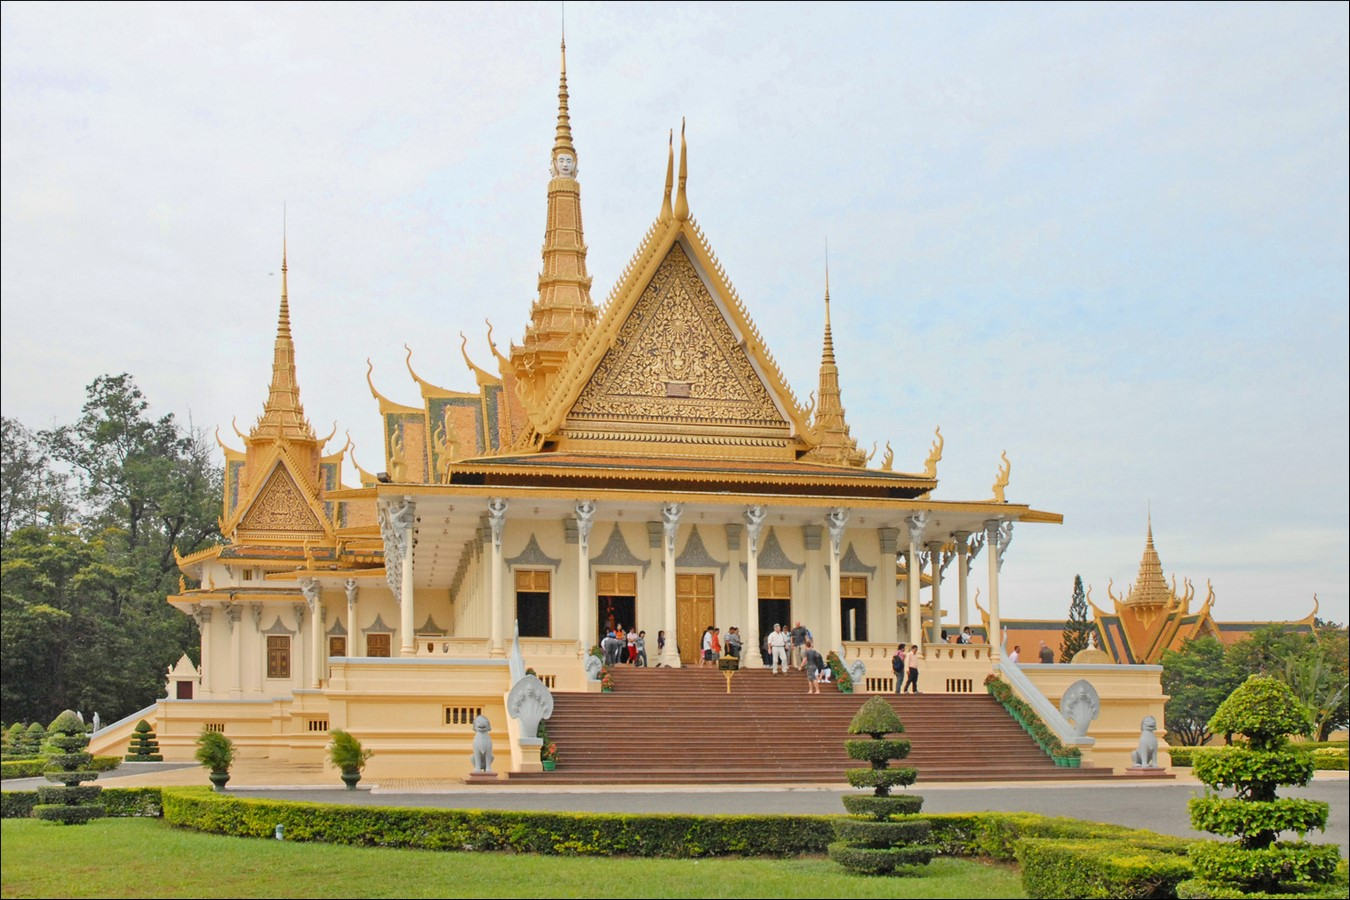 Napoleon III Pavilionb by Neak Okhna Tep Nimith Mak- The Palace with the golden top- sheet1